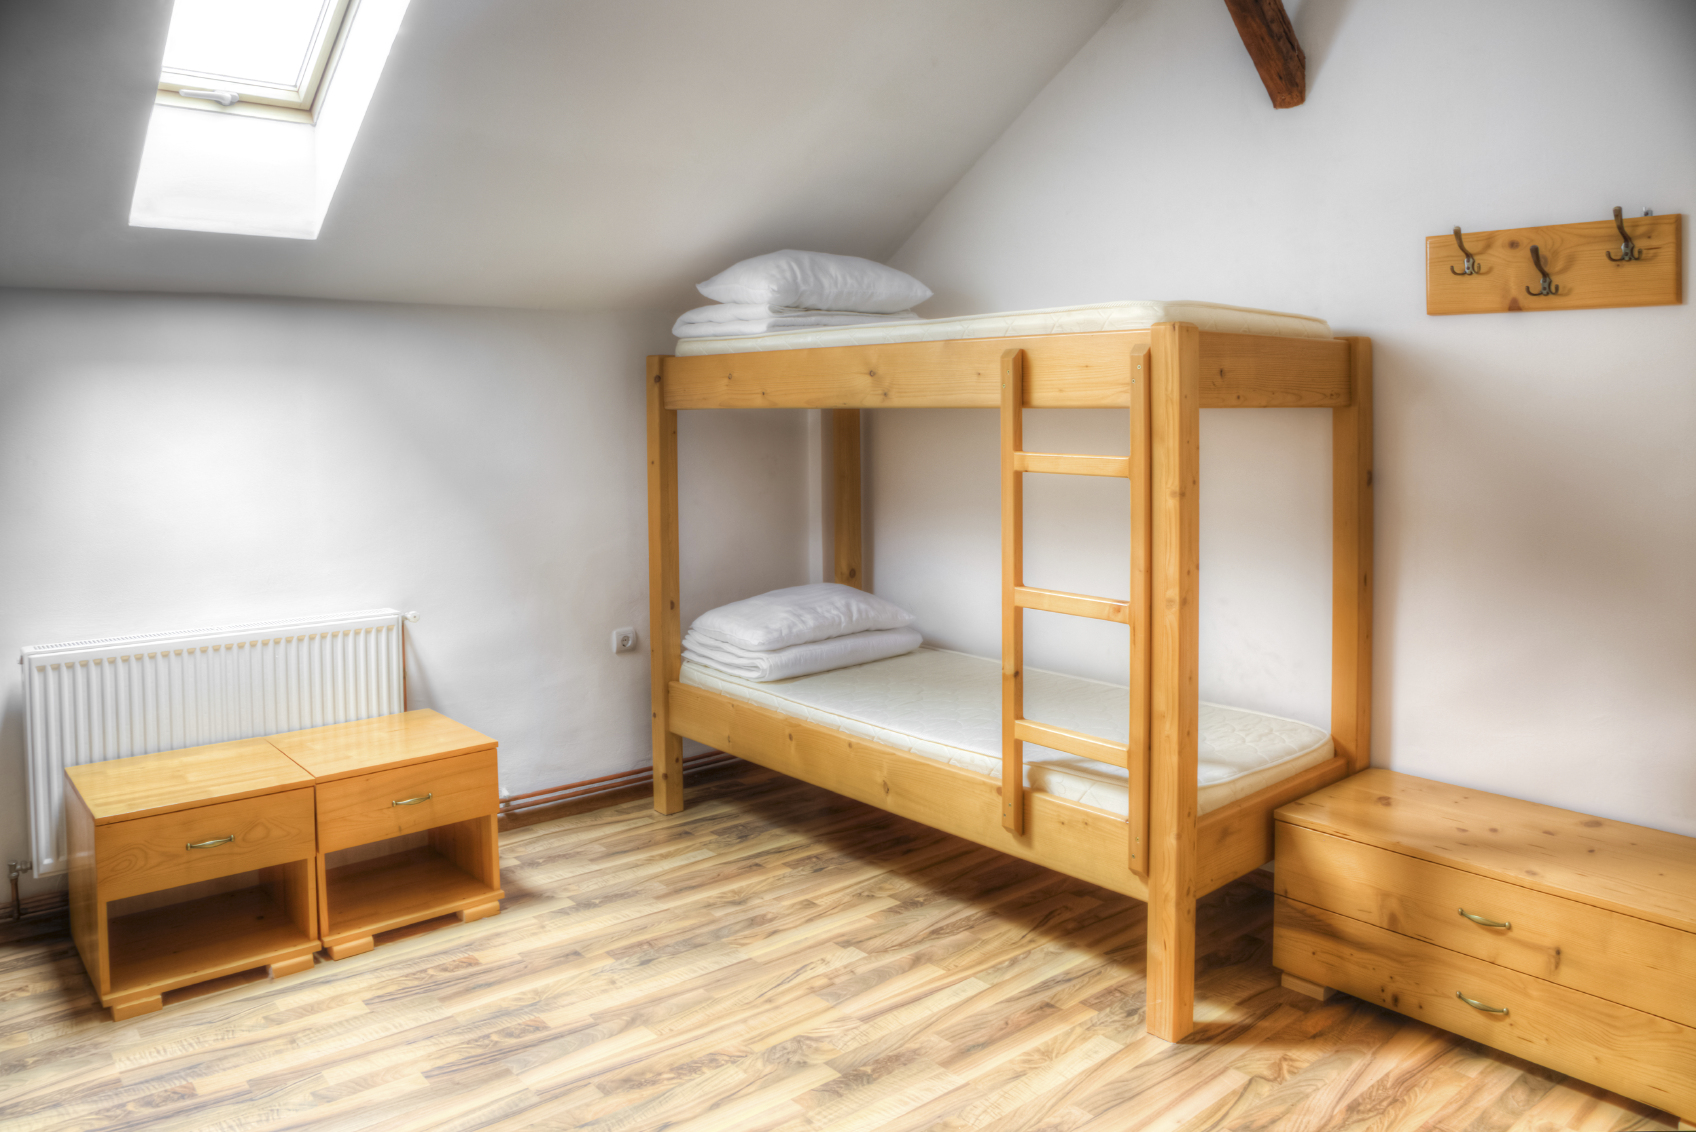 Airbnb For Academia Plan To Inject Pro Market Ethos Into